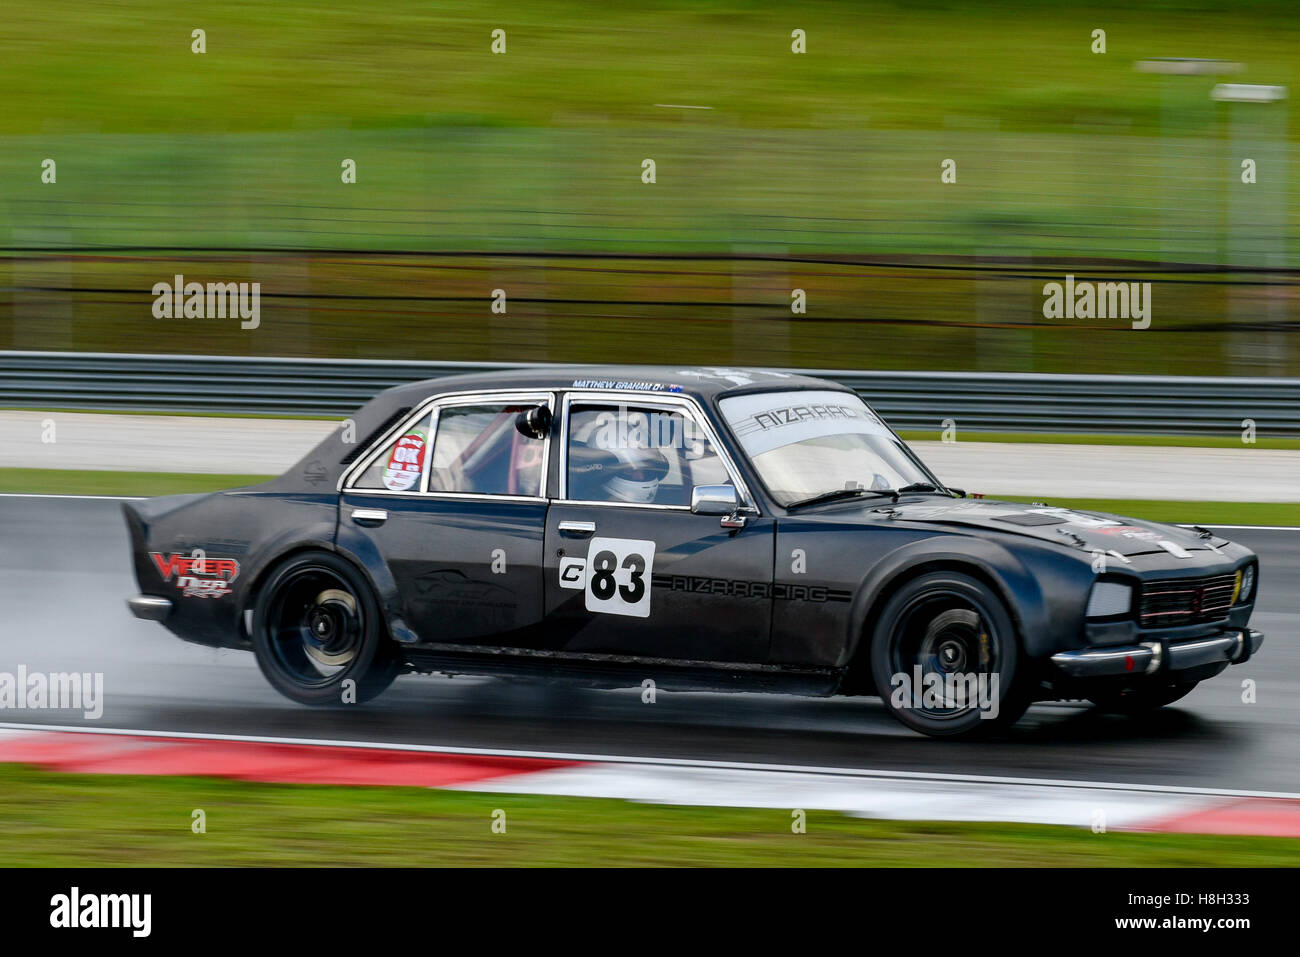 Matthew Graham Driving The 83 Peugeot 504 On Track During The Asia